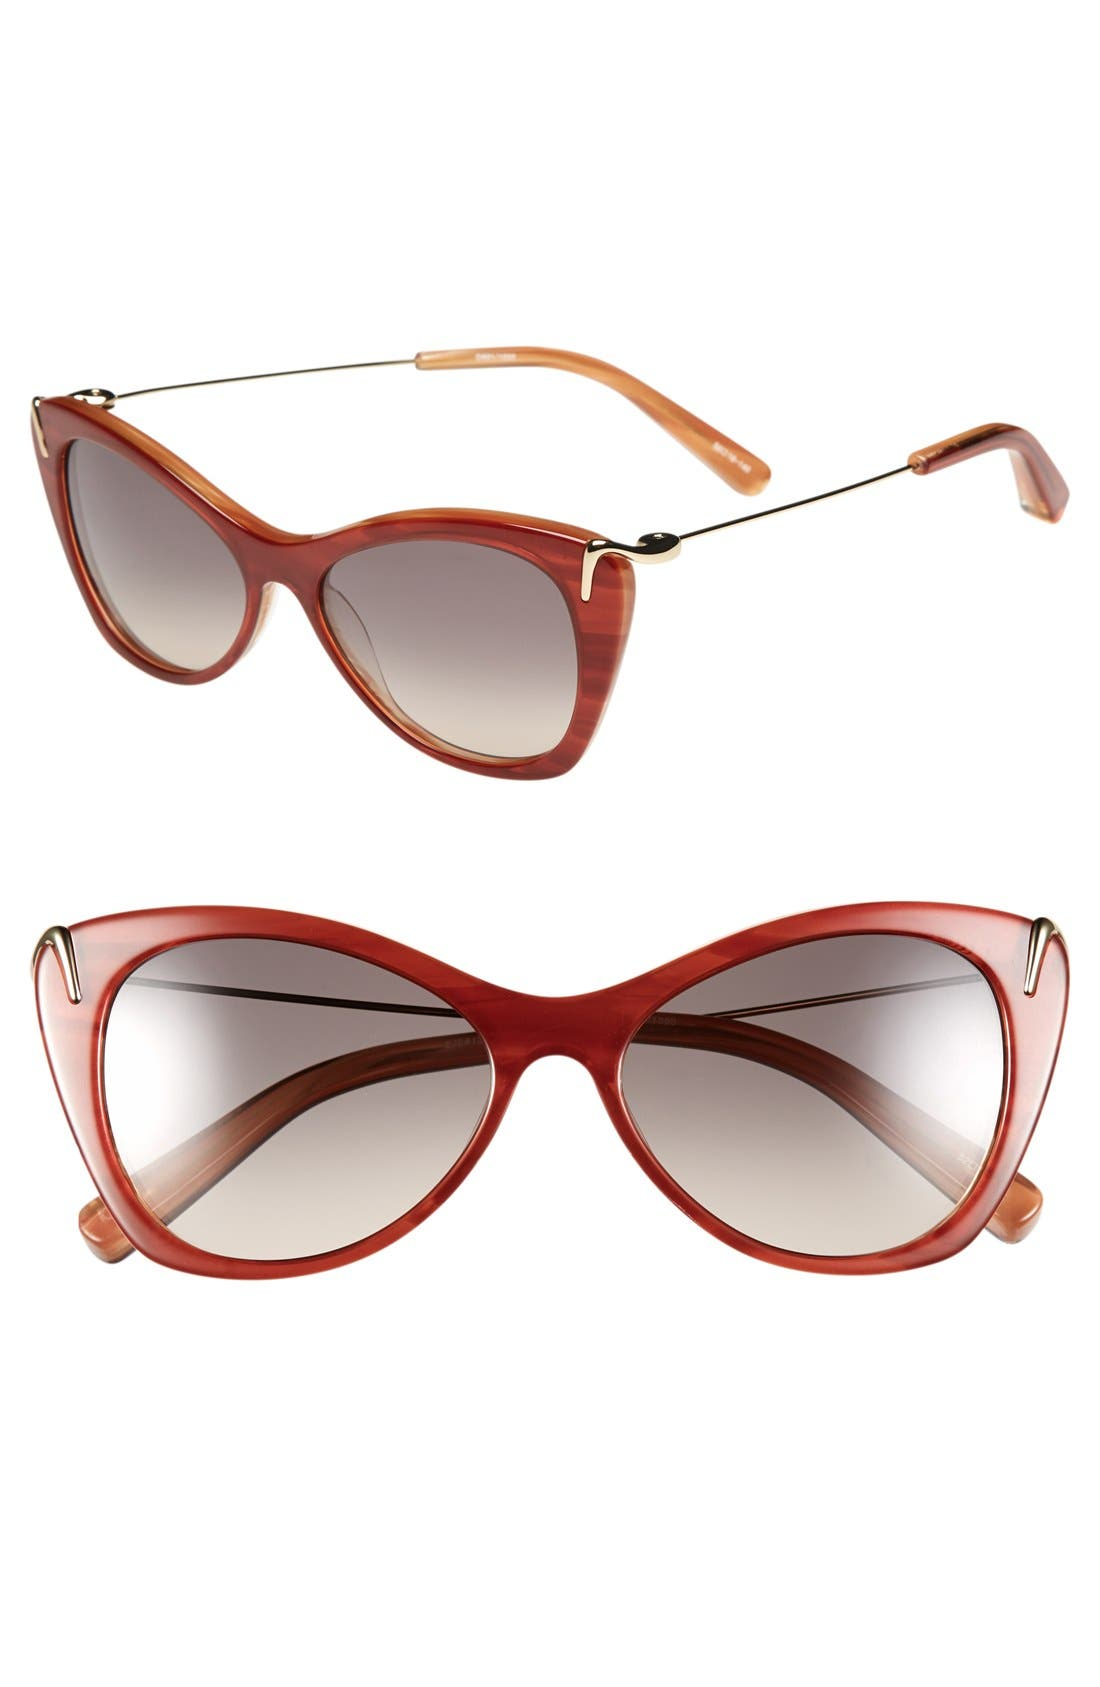 Main Image - Elizabeth and James 'Fillmore' 52mm Cat Eye Sunglasses